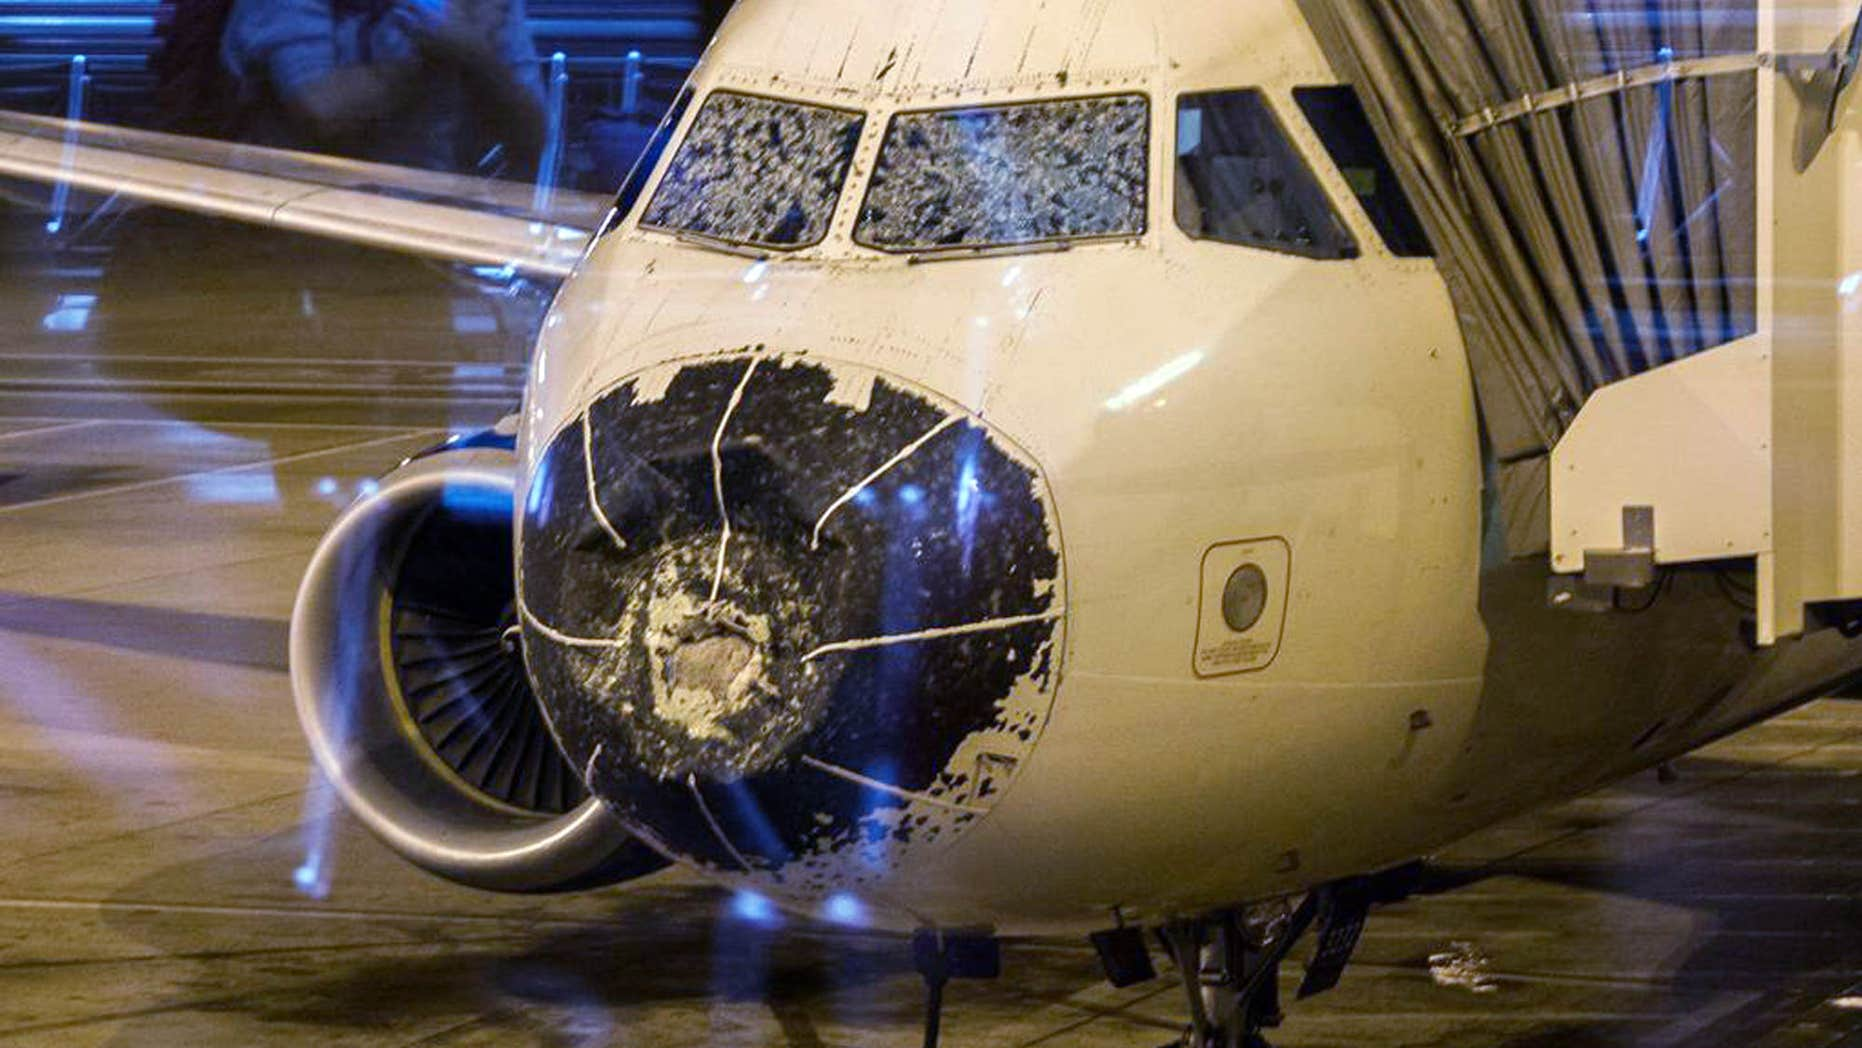 Aug. 7, 2015: This photo provided by Beau Sorensen shows the damage done by hail to the nose cone and windshield of a Delta flight.